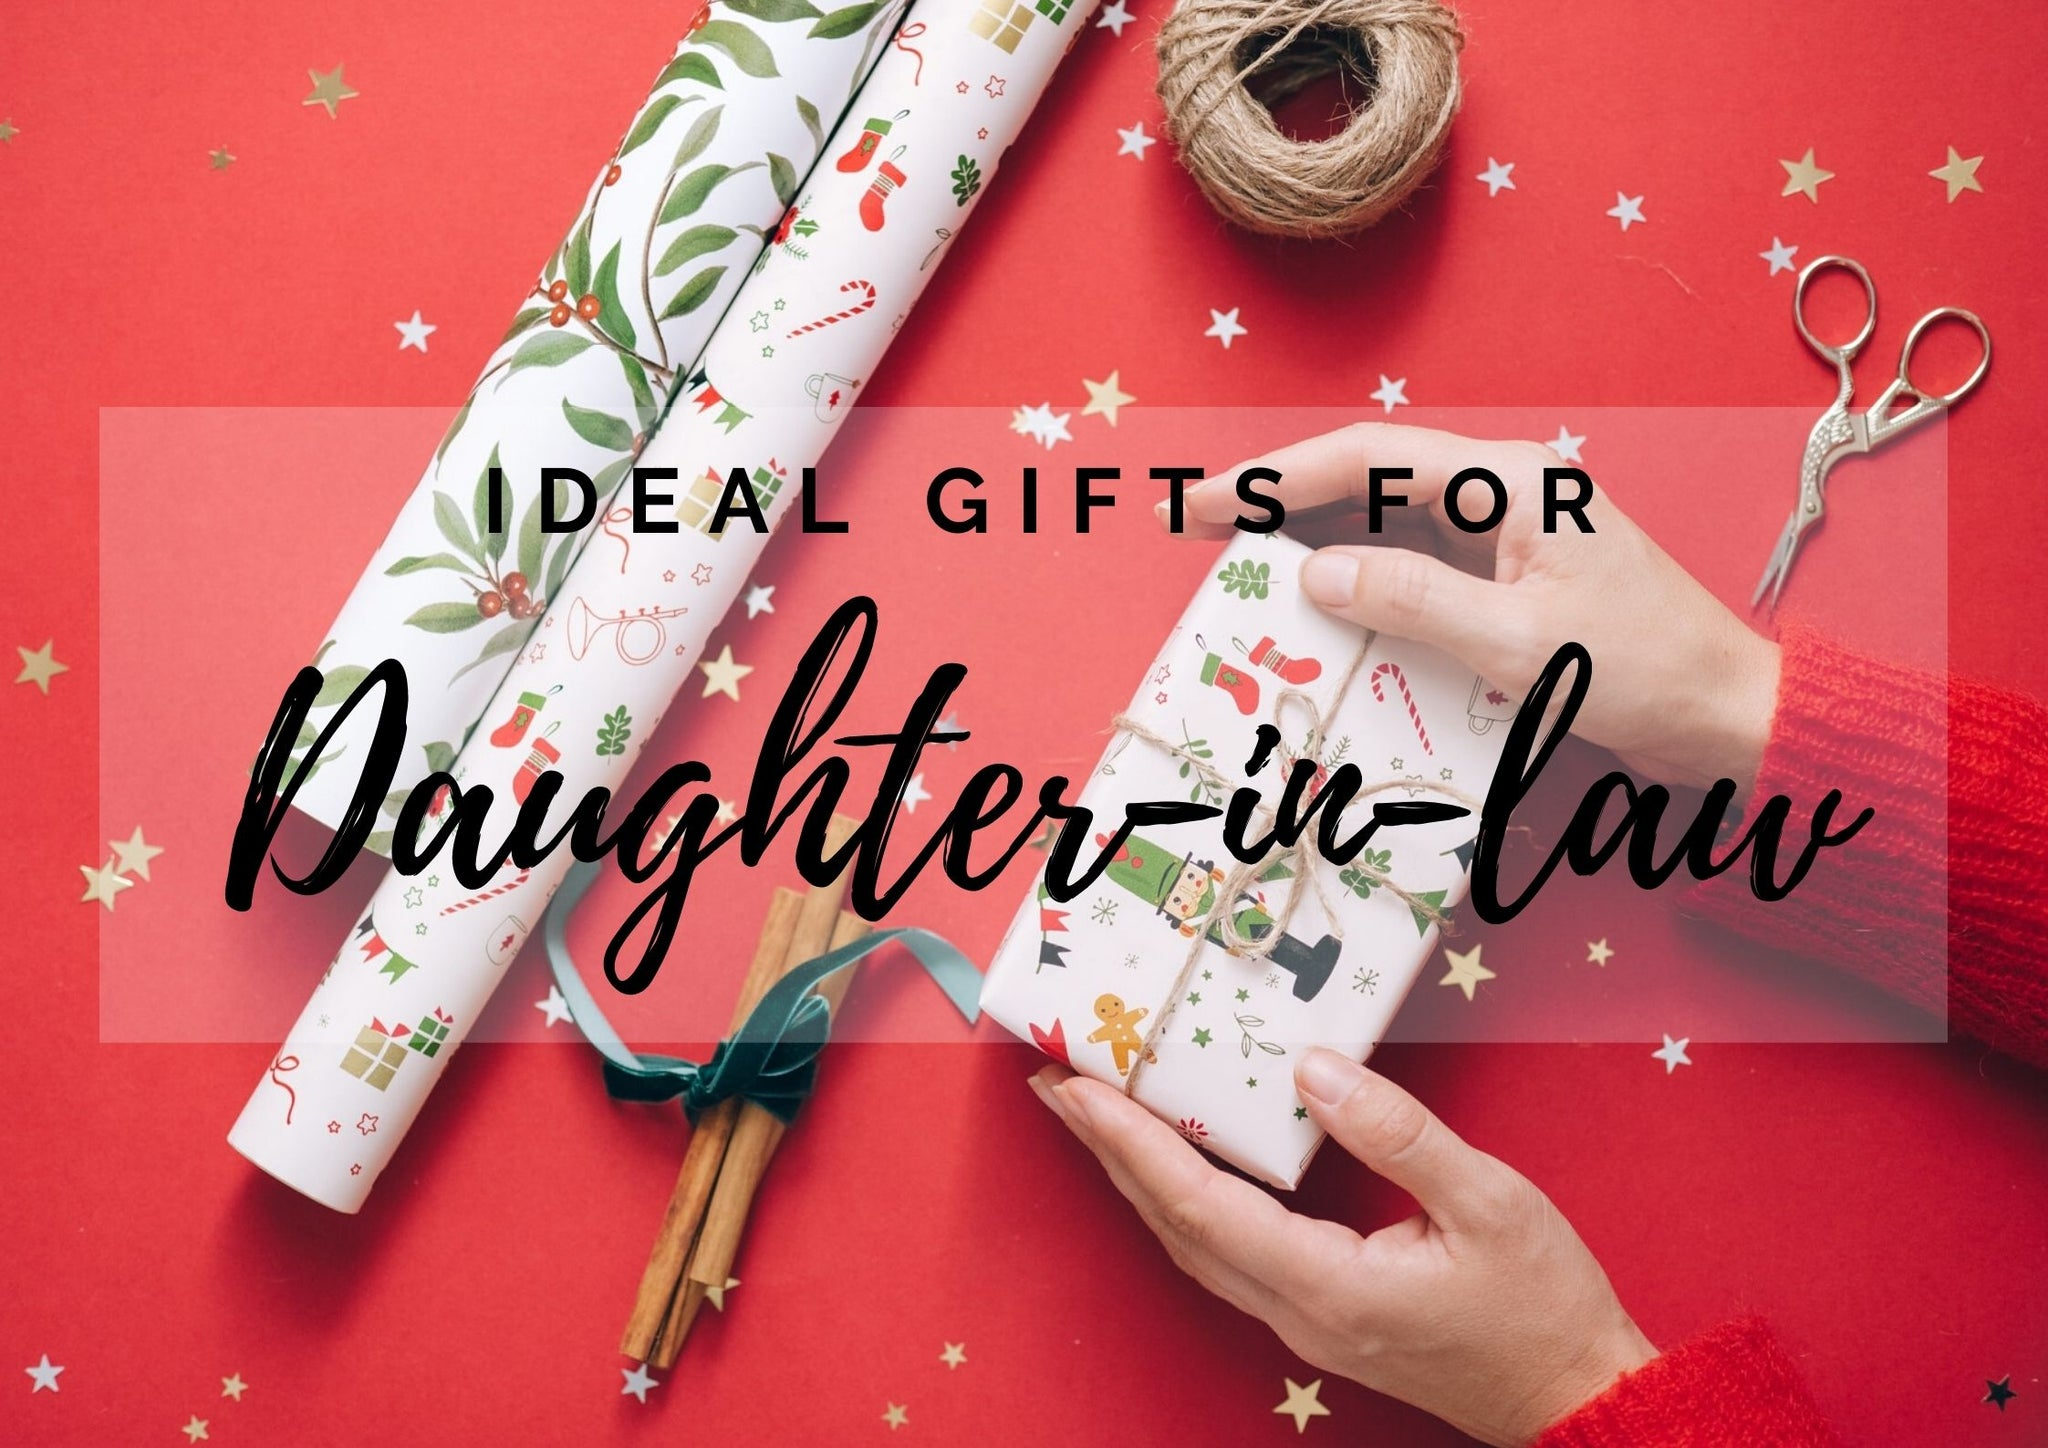 Personalized Gifts for Daughter-In-Law